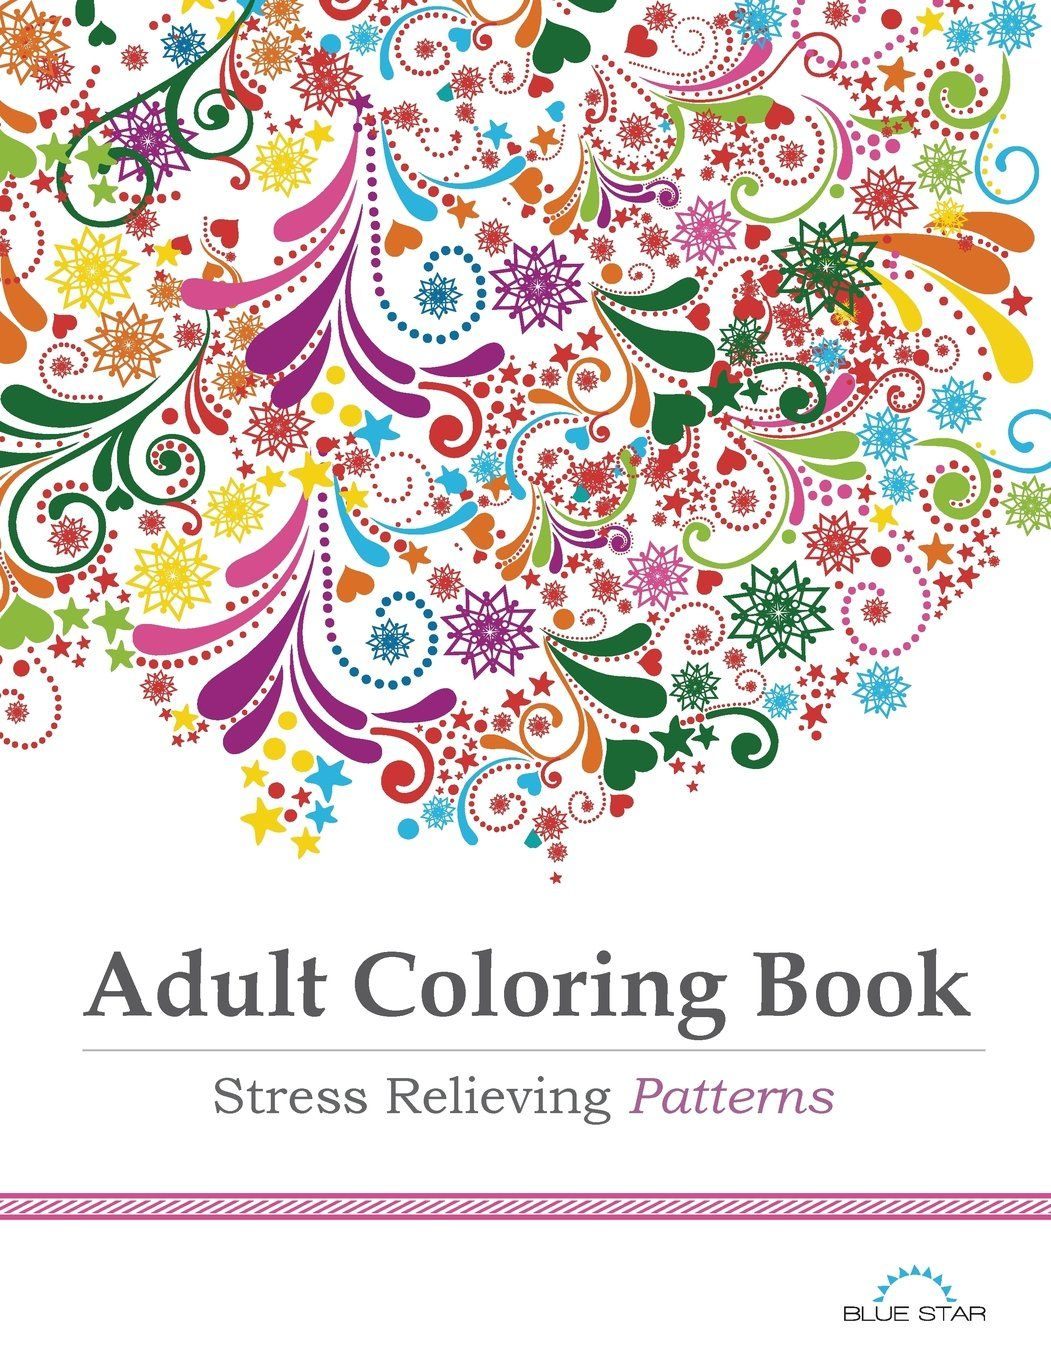 Stress relief coloring books disney - 17 Best Images About Coloring As An Adult Is Fun And Relaxing On Pinterest Coloring Coloring Books And Disney Princess